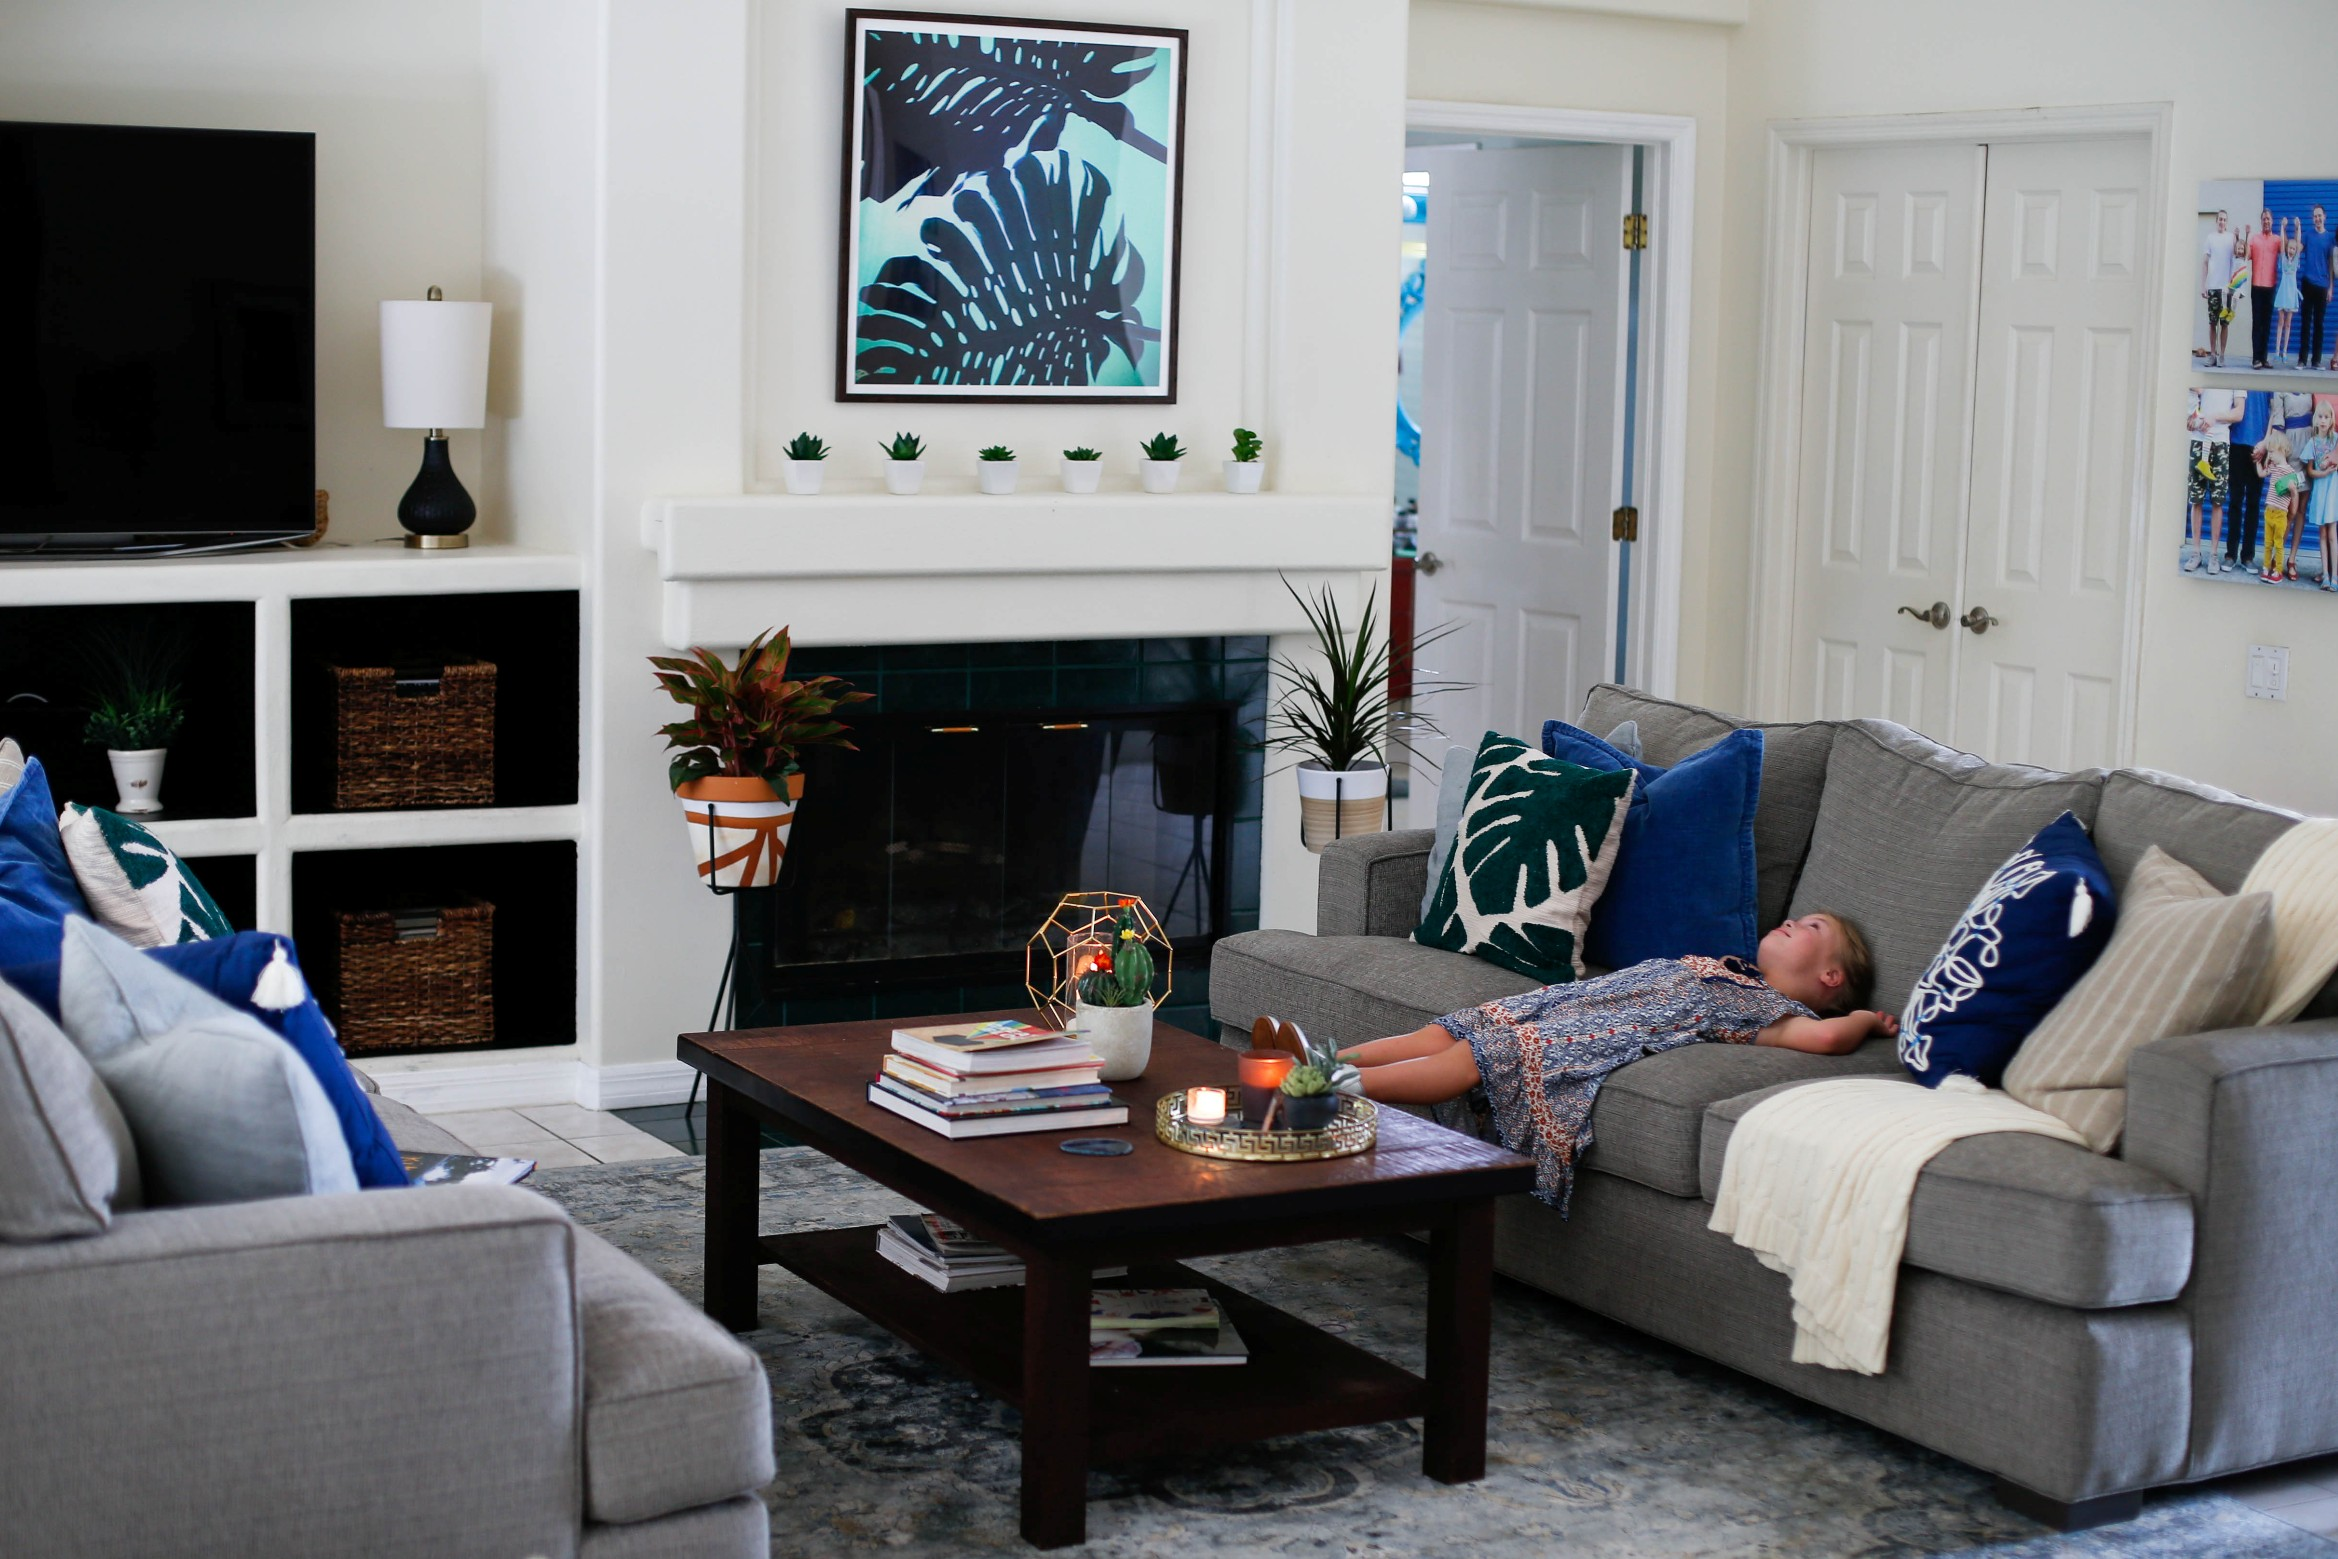 Ordinaire Fall Is The Gateway To Loving Your Home: So Long, Living Room Clutter!    Enjoying The Small Things